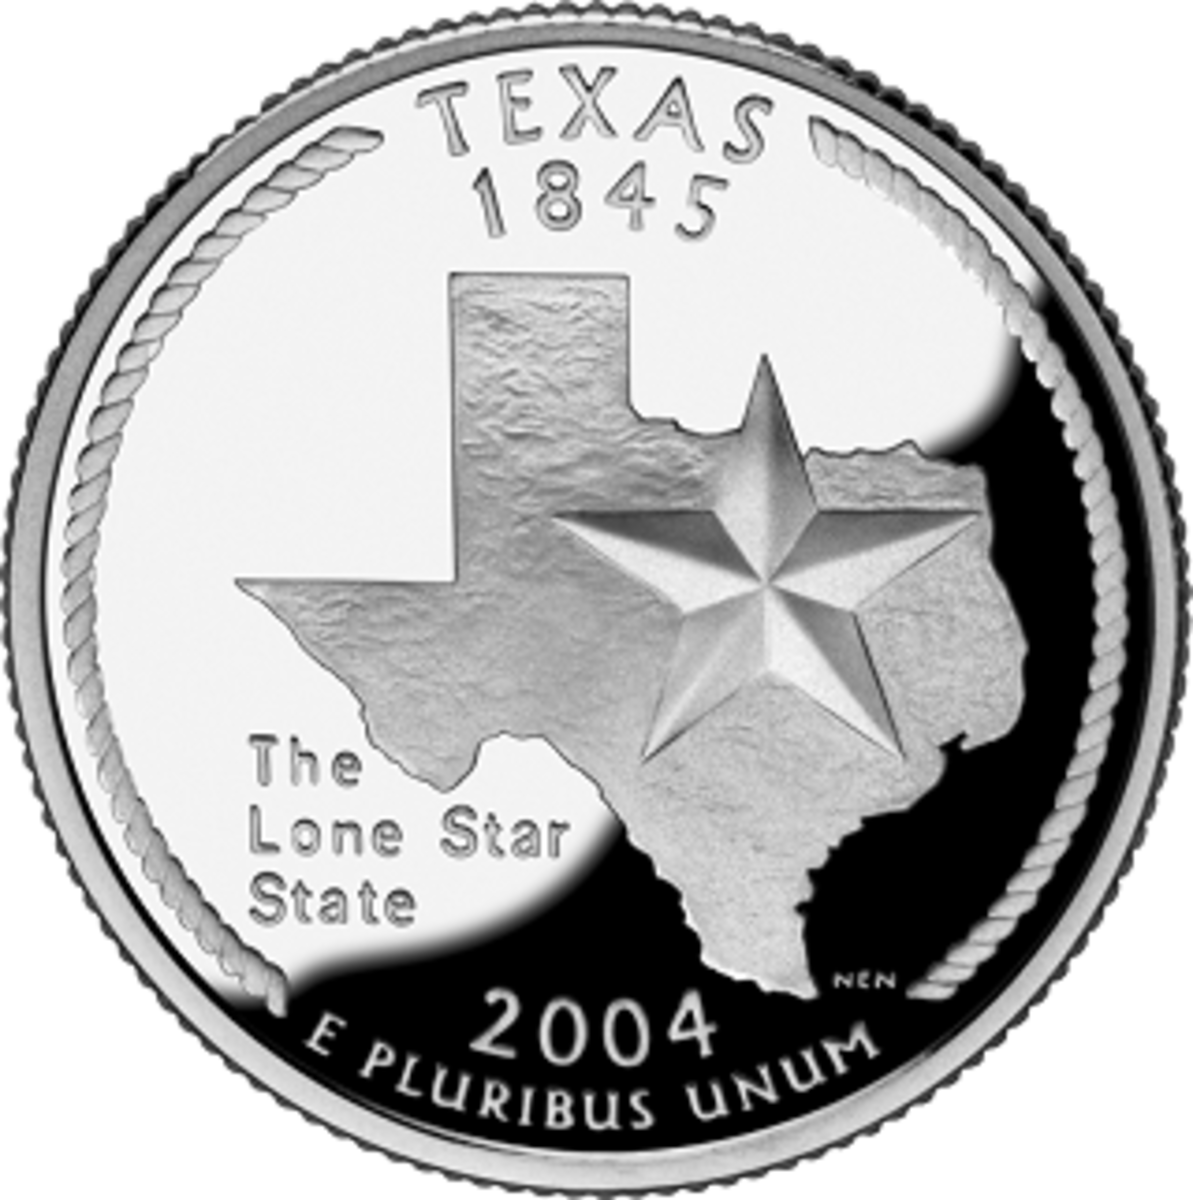 By United States Mint - http://www.usmint.gov/pressroom/index.cfm?flash=yes&action=photo United States Mint, Public Domain, https://commons.wikimedia.org/w/index.php?curid=700656